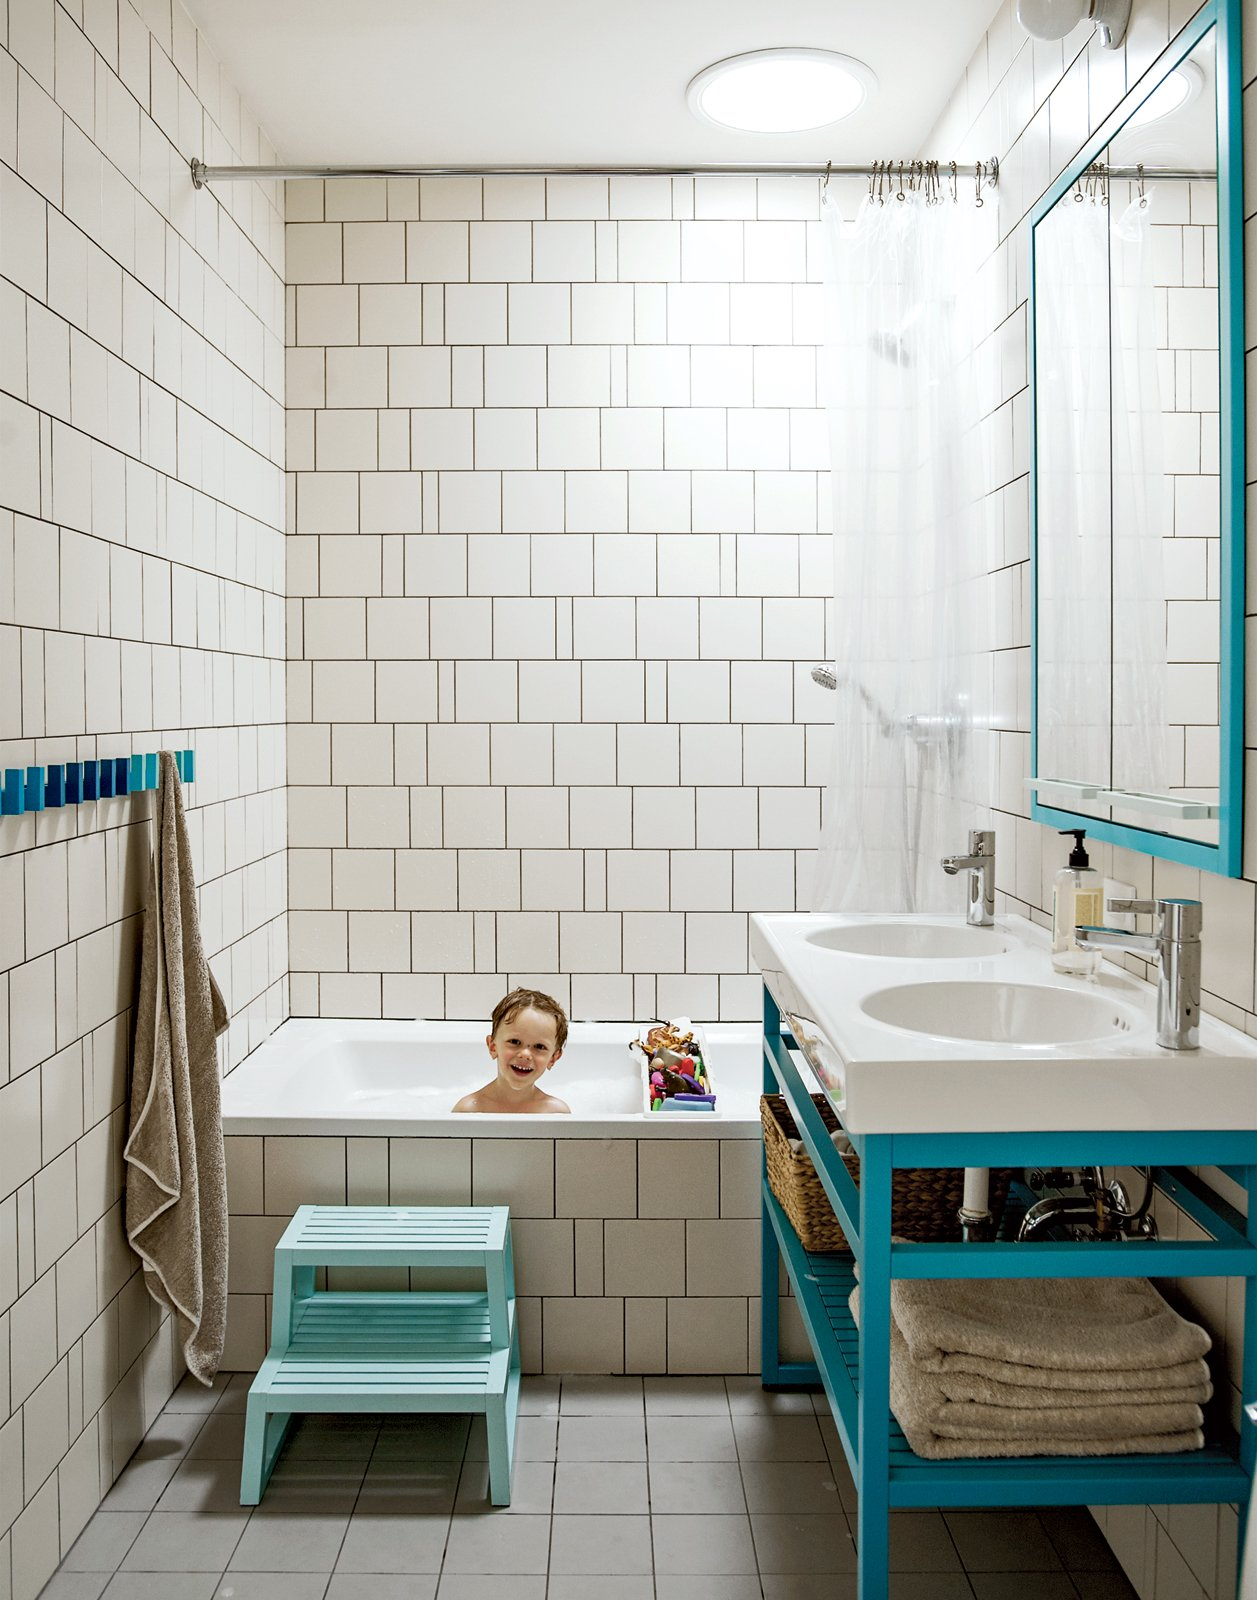 """Bath Room, Drop In Tub, Ceramic Tile Wall, and Ceramic Tile Floor Bathroom  A creative way of cutting costs is on display in son Nate's bathroom, where the wall tiles are arranged in a whimsical, irregular pattern making use of slim sections of tile cut for transitions and corners. """"We came up with a pattern that could incorporate random sizes so we were able to order the exact amount of tile that we needed,"""" Bischoff says. """"It allowed us to get the most out of the tile price because there wasn't that 20 percent that [would normally go] into the landfill."""" The two-bowl sink is the Vitviken model from Ikea; it's topped with a chrome Hansgrohe faucet and accented by Ikea's Godmorgon medicine cabinets customized by MADE.  Photo 6 of 8 in A Budget Friendly Brownstone Renovation in Brooklyn"""